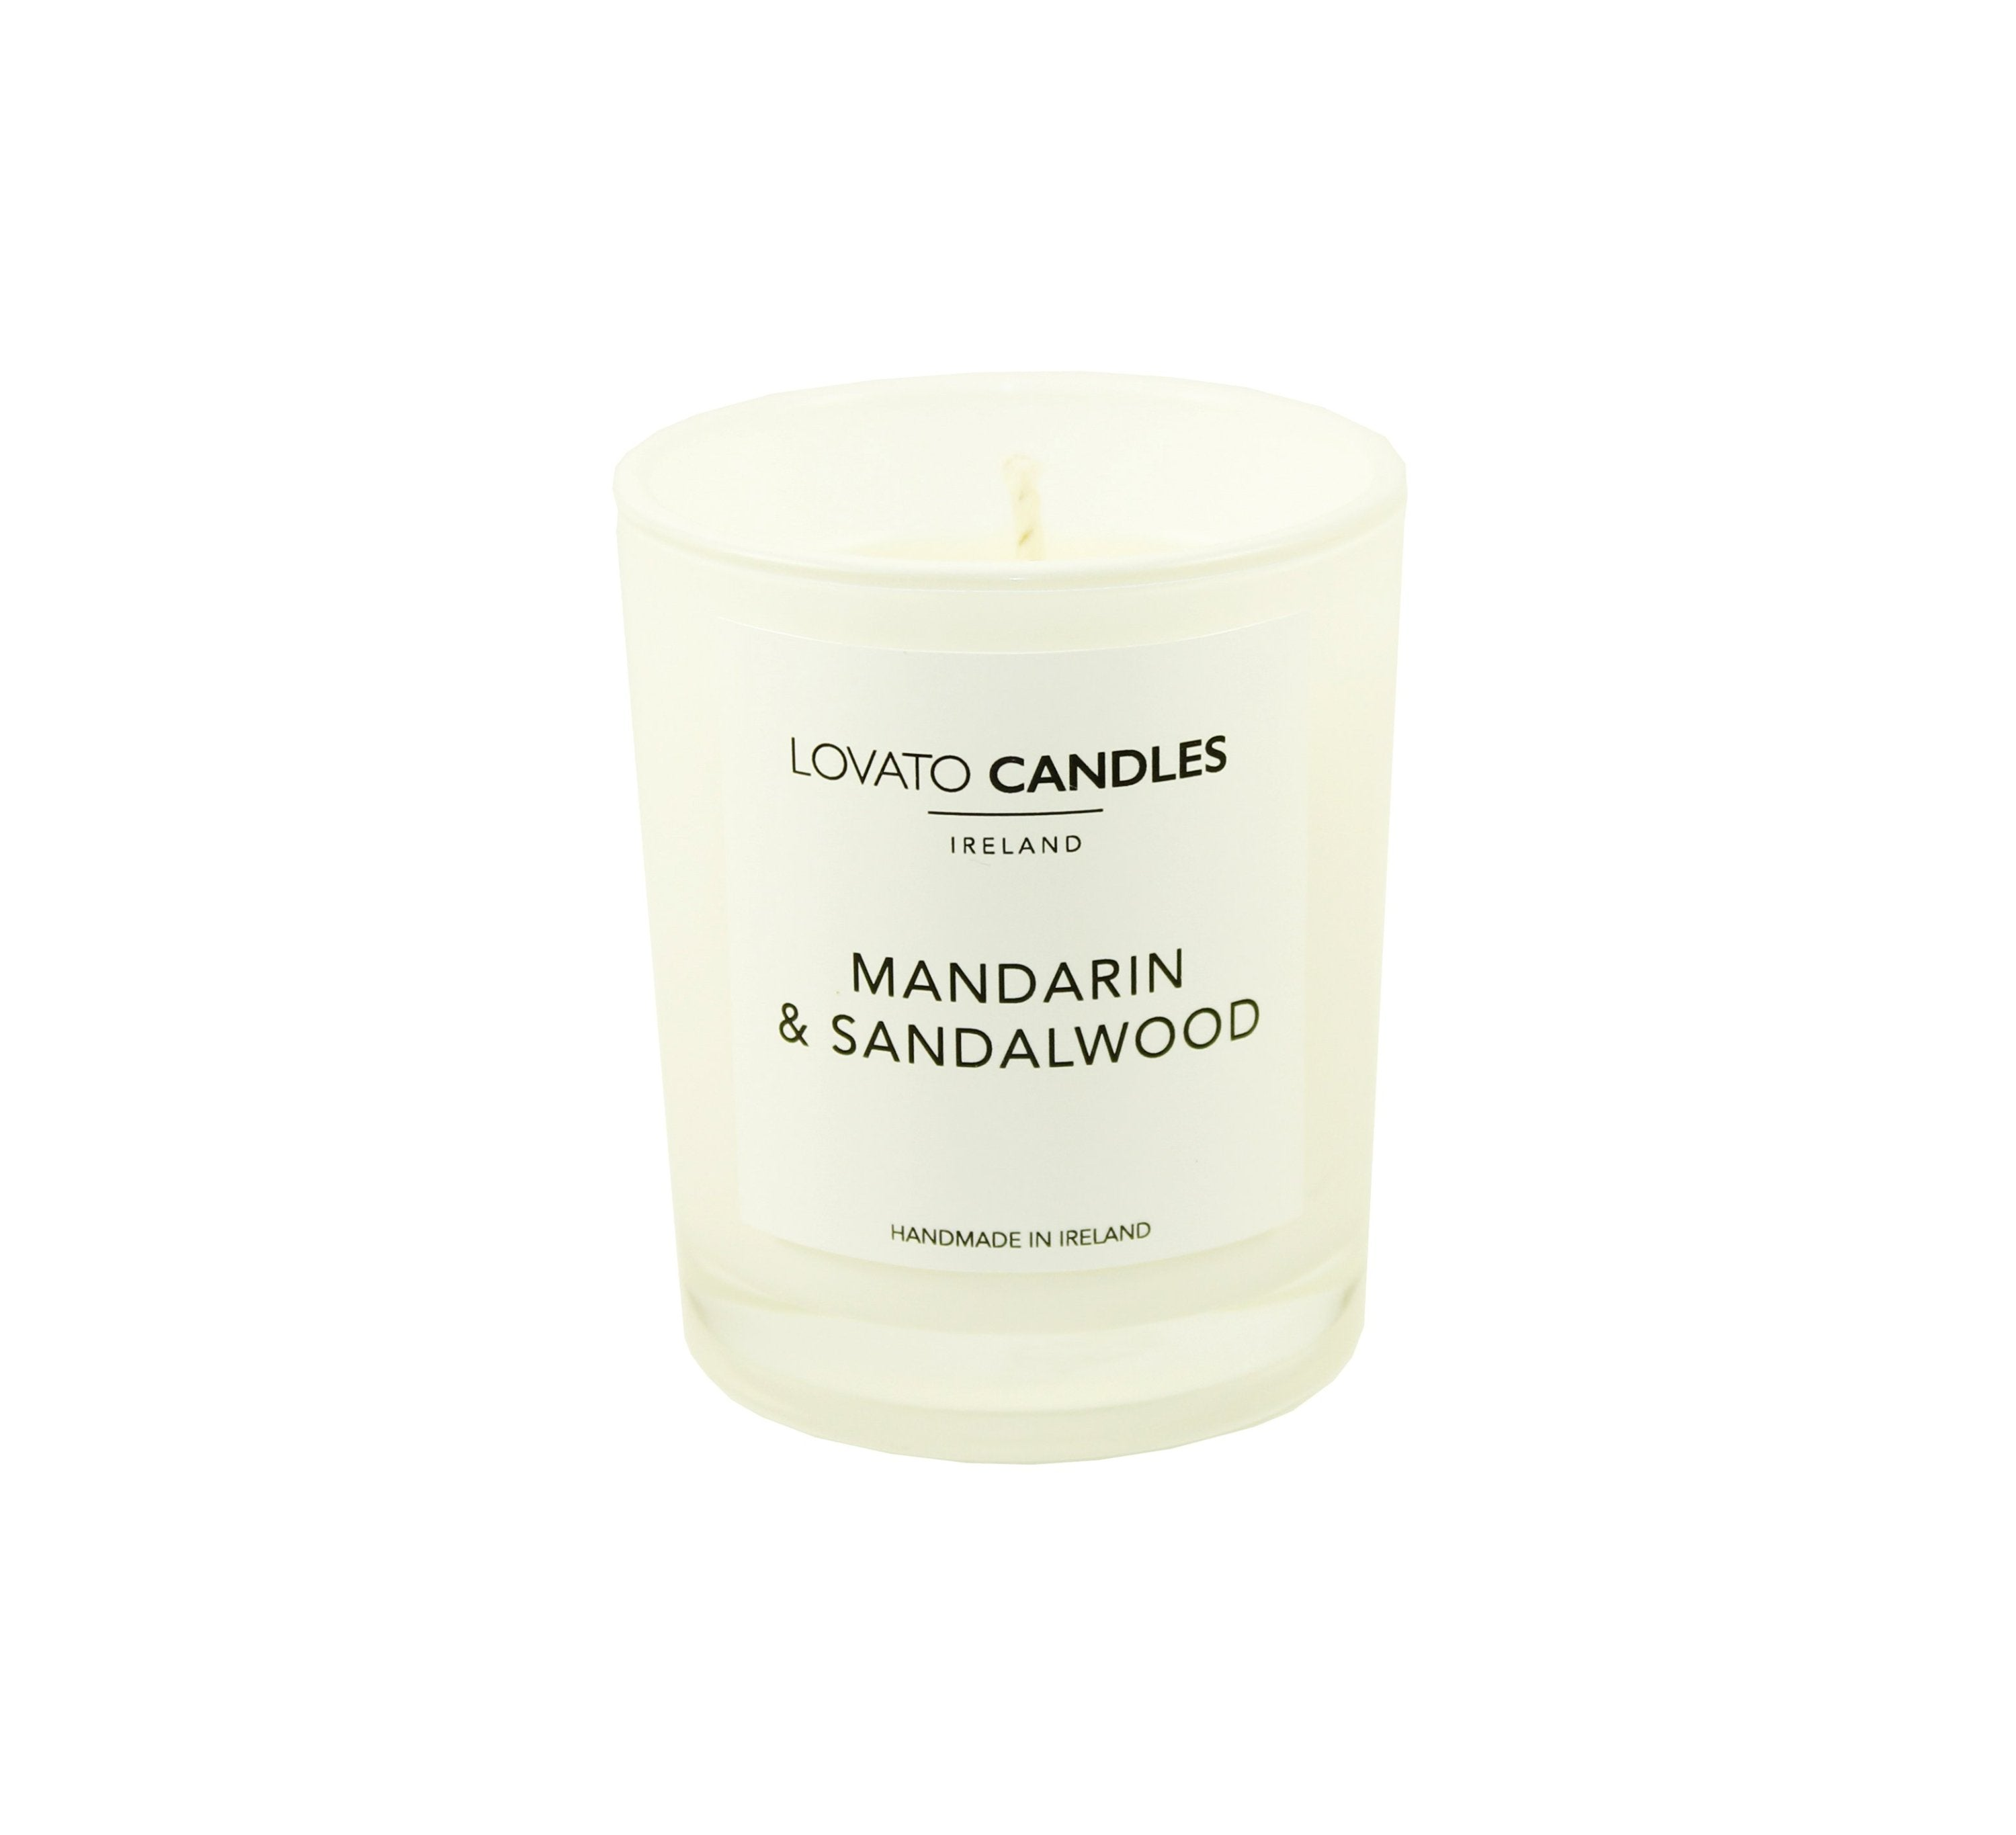 White Votive Candle - Mandarin & Sandalwood - Lovato Candles